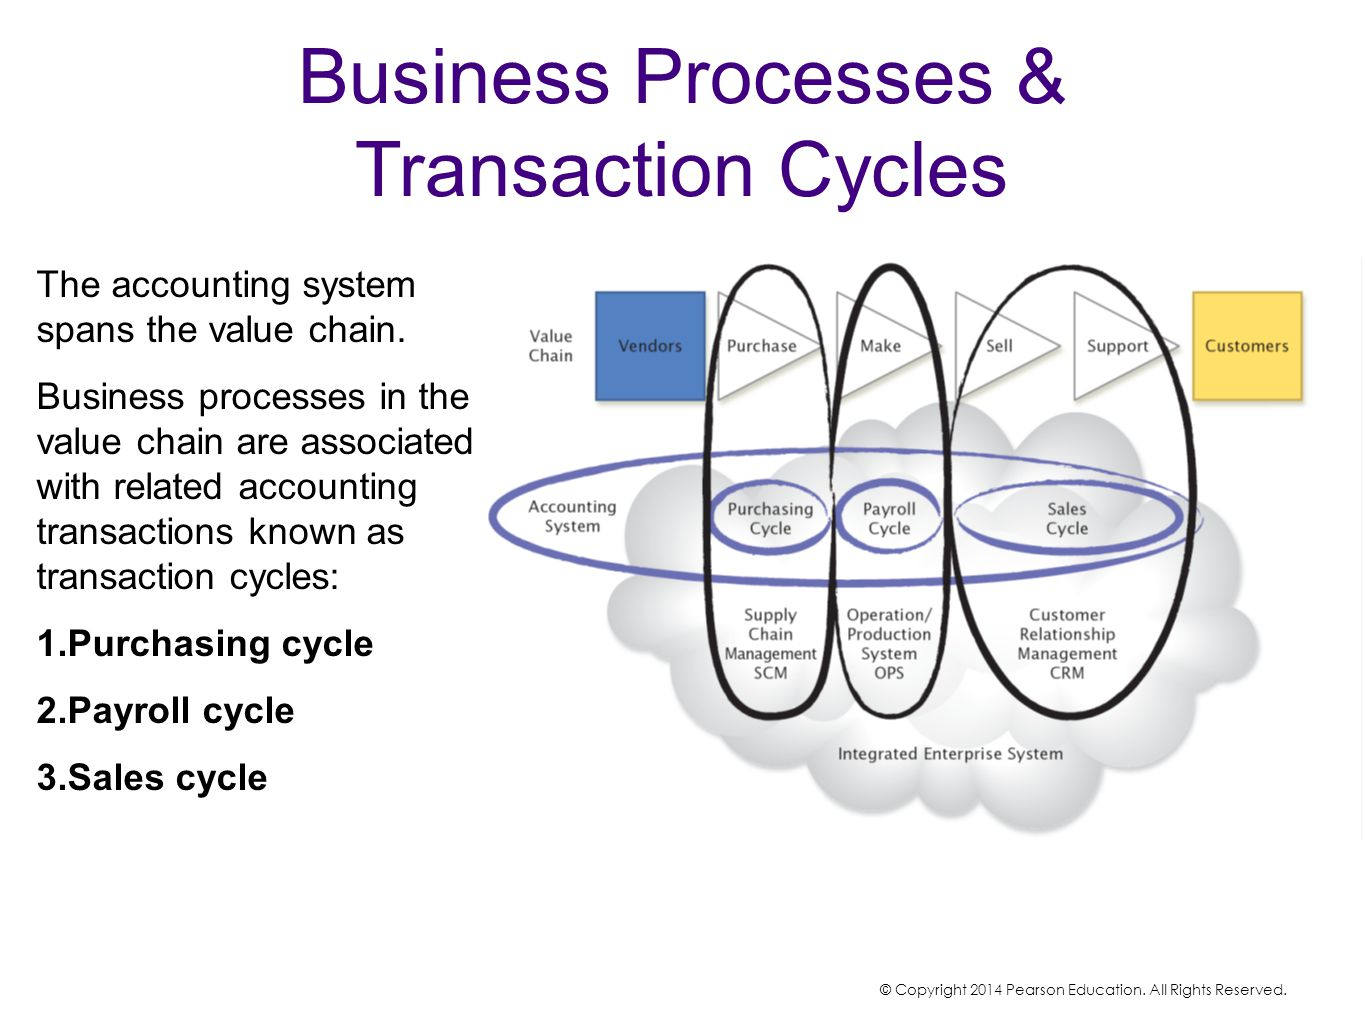 Business Processes & Transaction Cycles The accounting system spans the value chain. Business processes in the value chain are associated with related